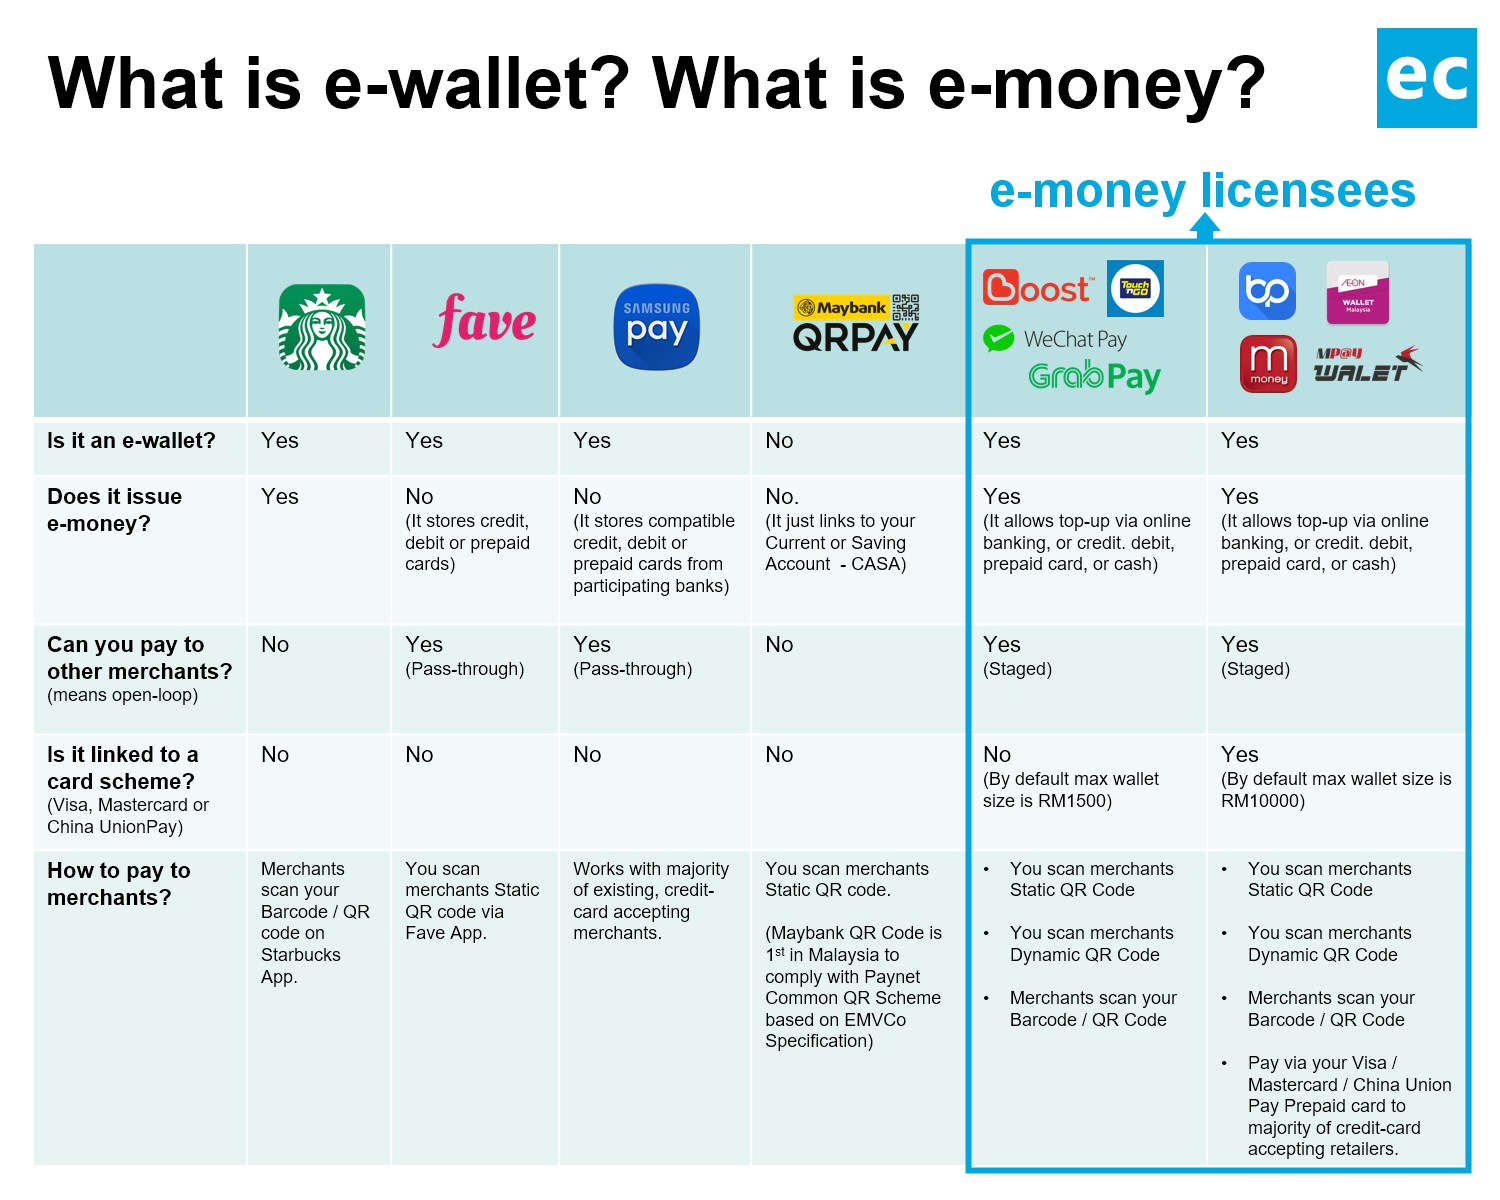 The e-wallet infinity war in Malaysia - Everything you need to know